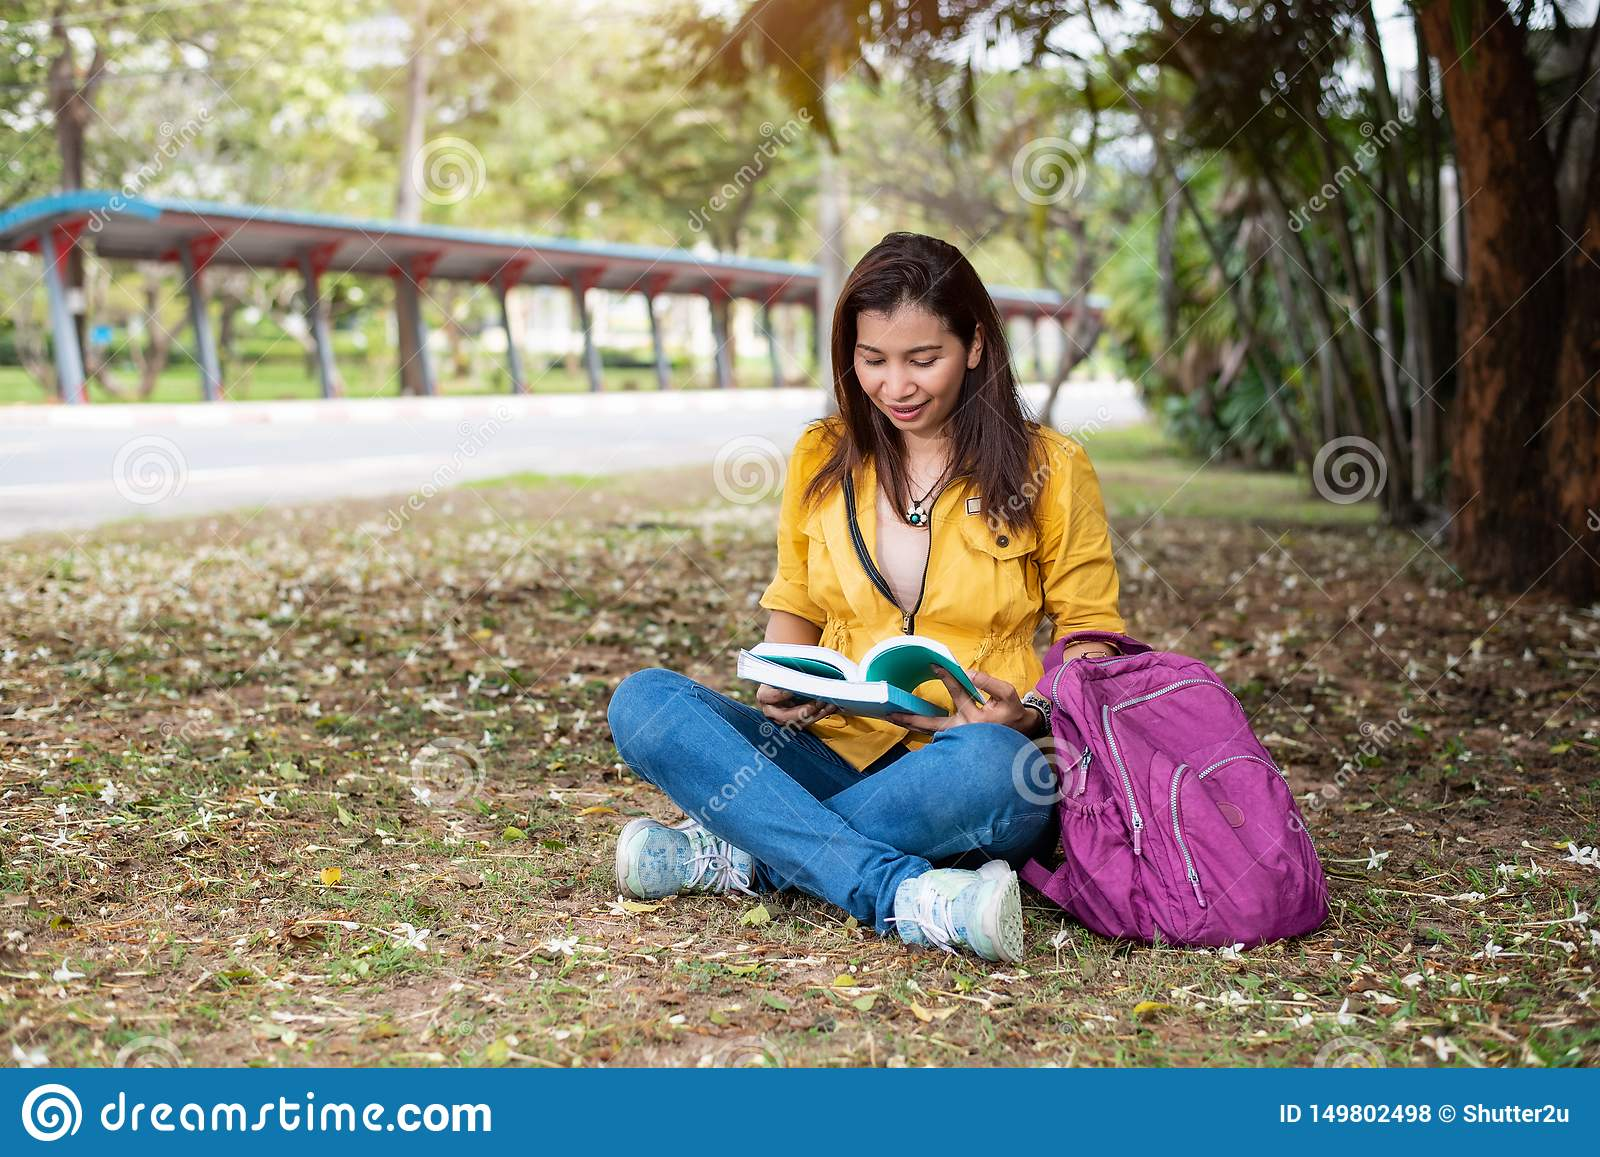 Happy Asian woman sitting and reading books in university park under big tree. People lifestyles and education concept. Summer